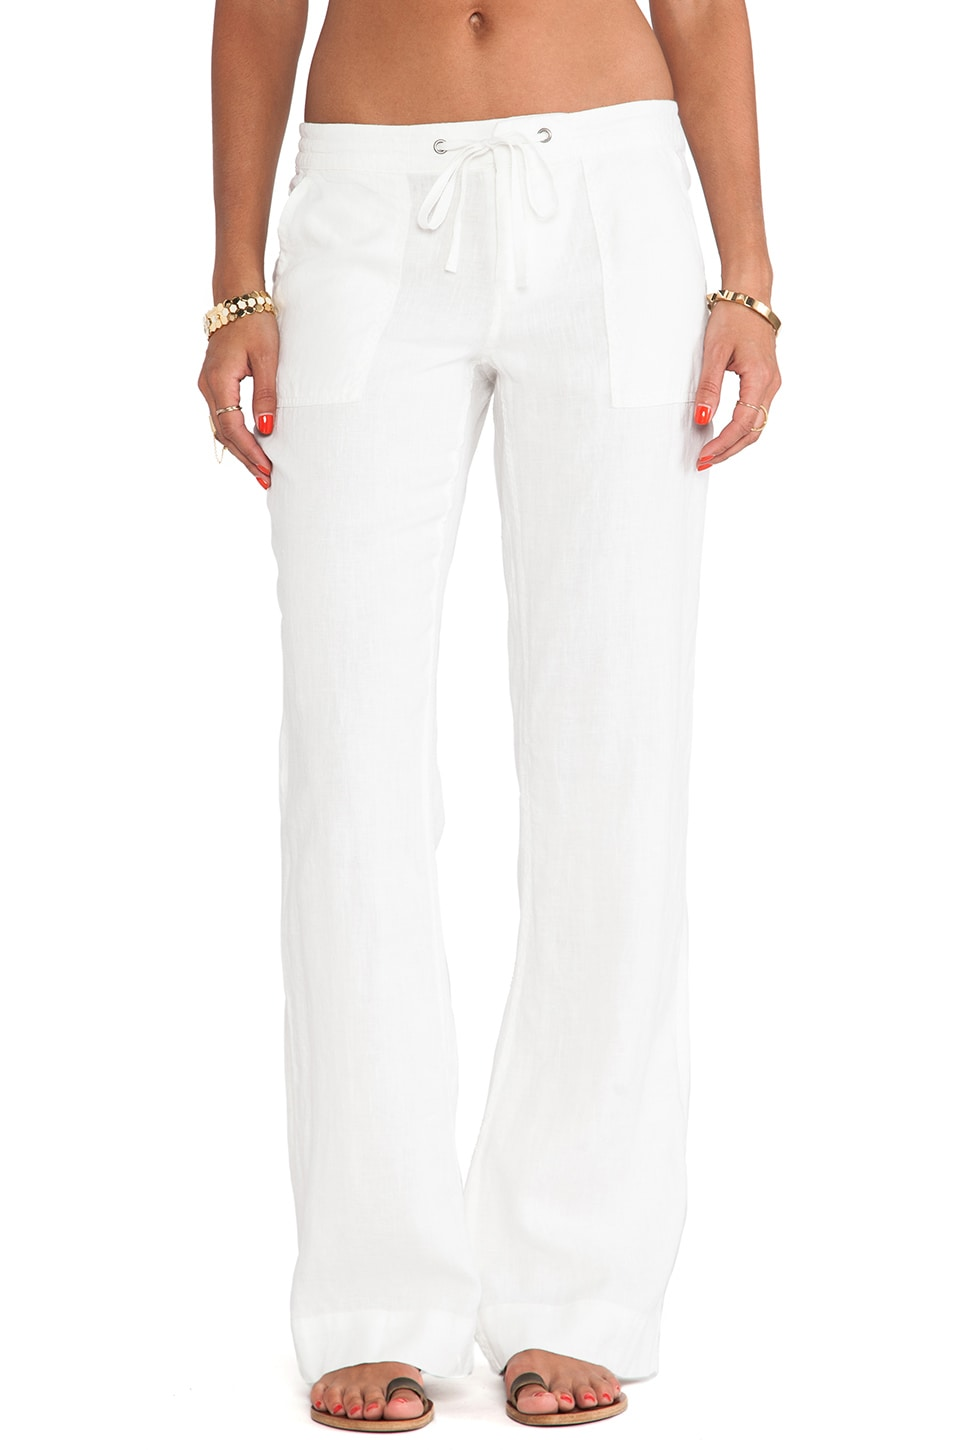 Joie Skylera Wide Leg Pants in Porcelain